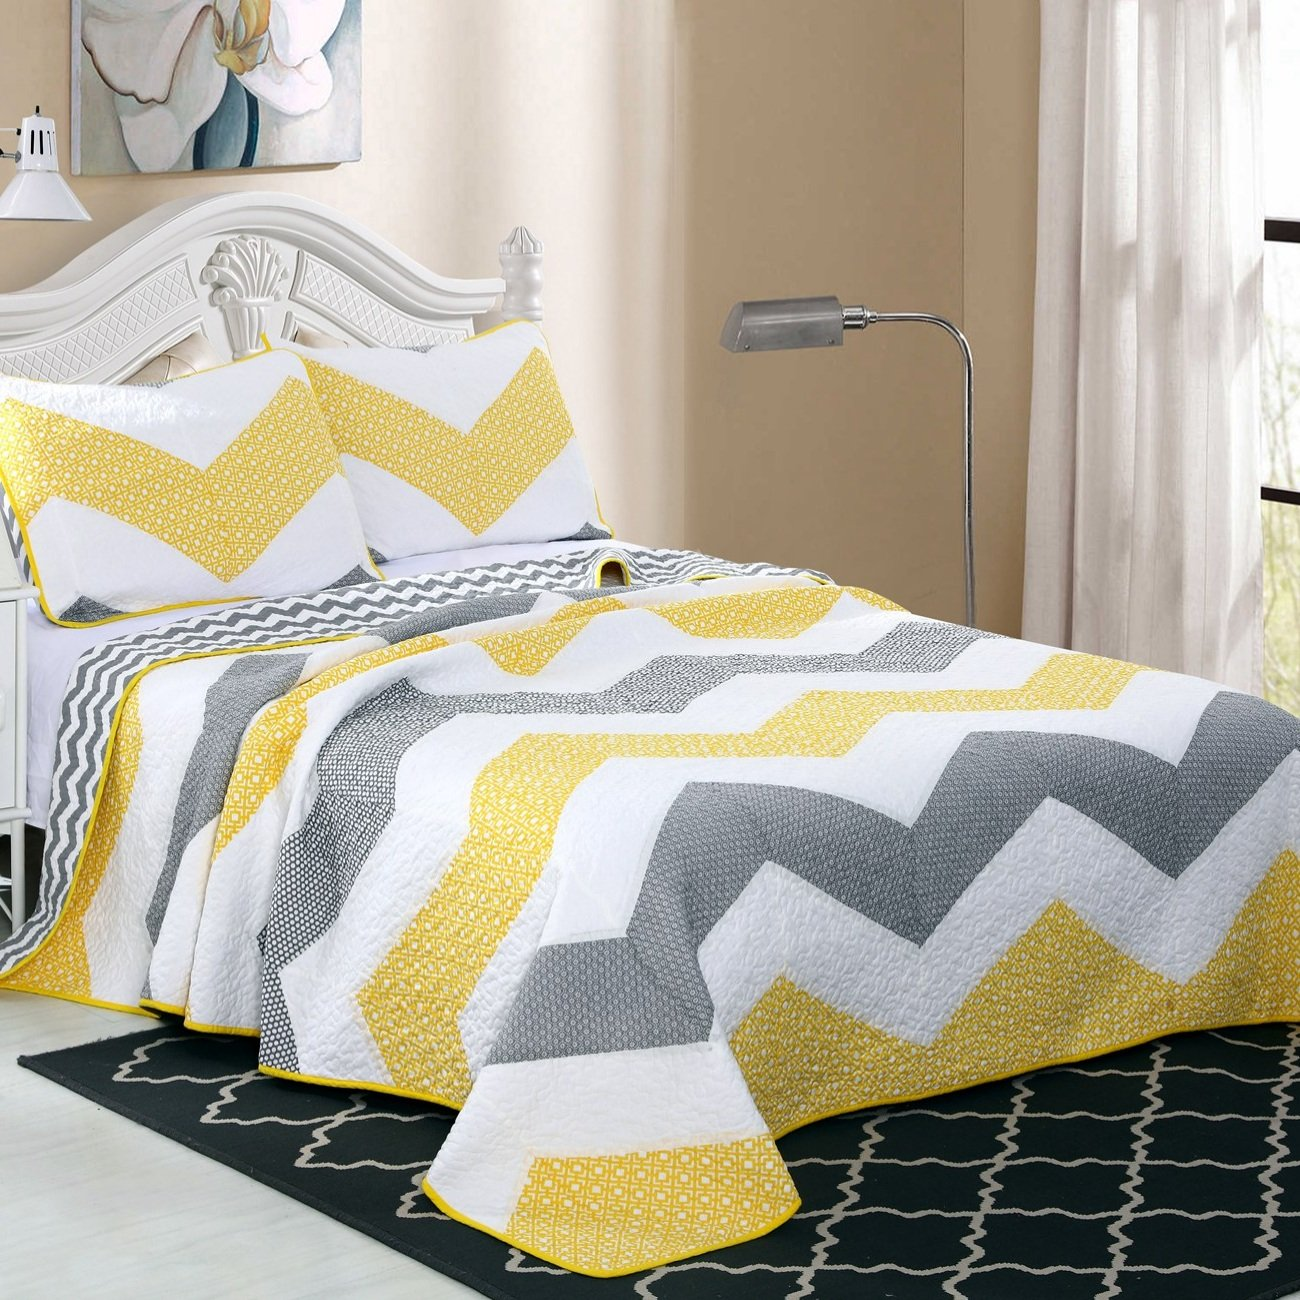 Alicemall Chevron Prints Quilt Set 100% Cotton White Gray Yellow Chevron Reversible Quilt / Bedspread Set, King Size Large Coverlet Set (Yellow, King)